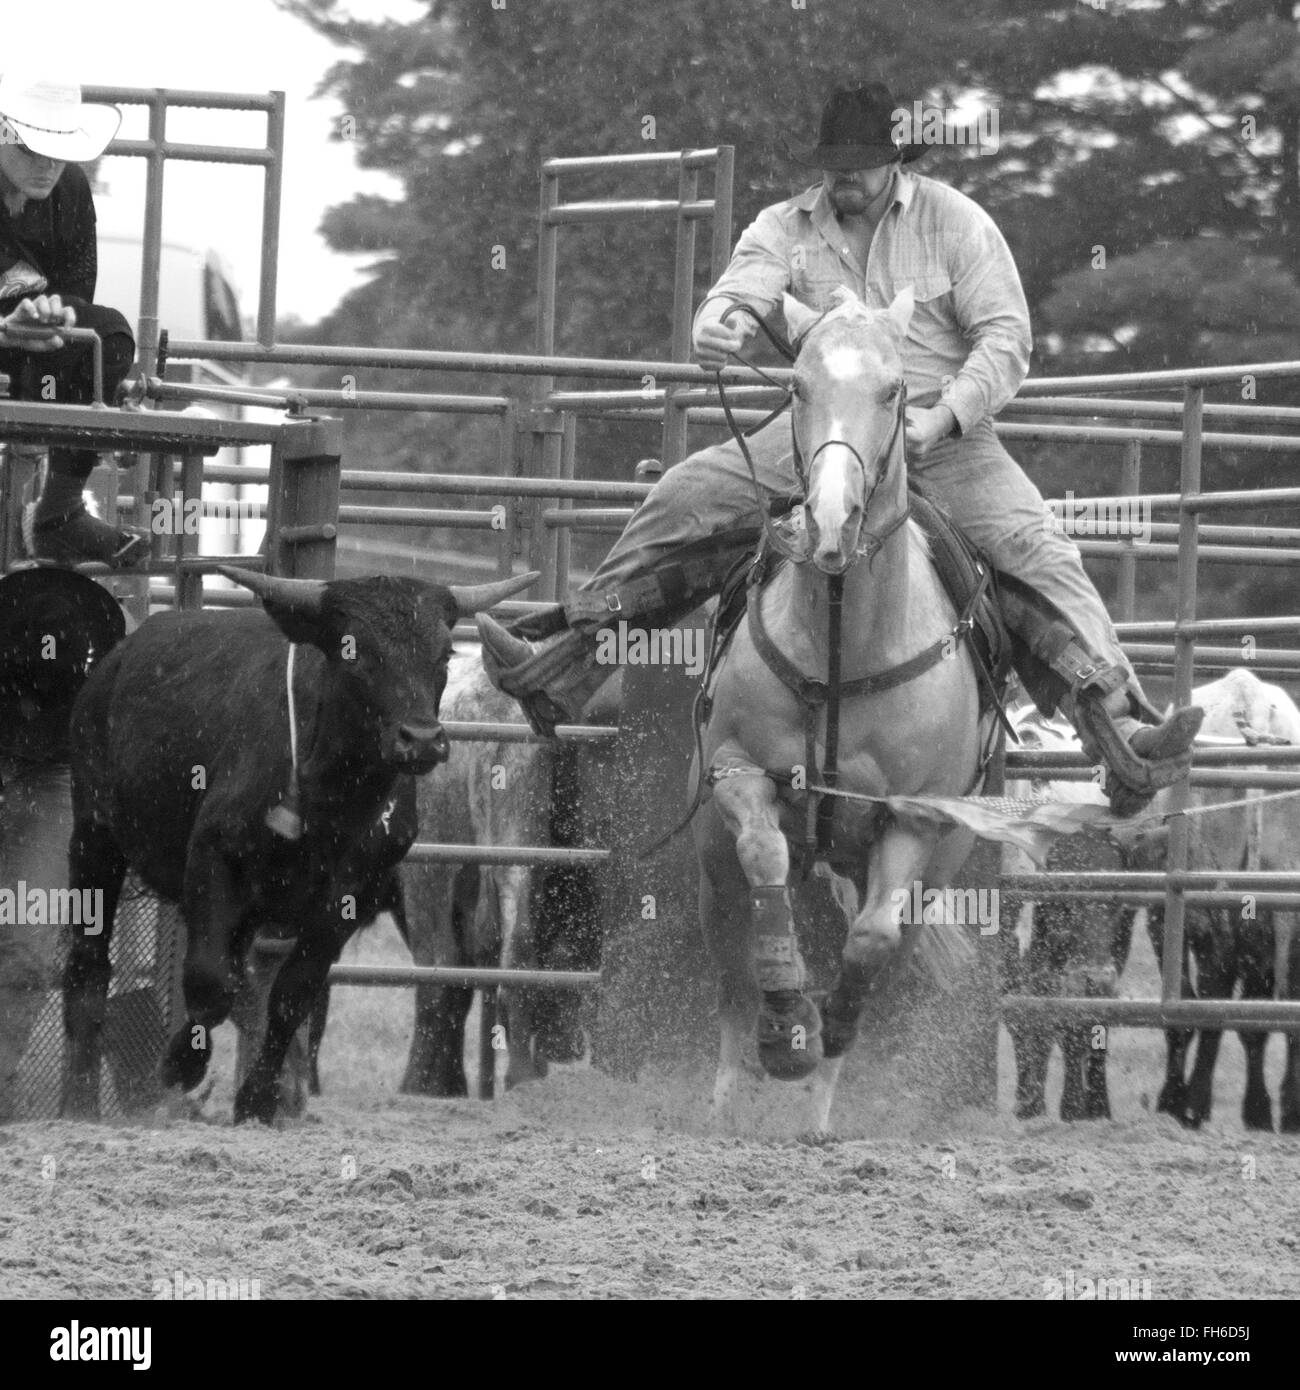 Steer wrestler at rodeo chasing steer in rainy weather - Stock Image